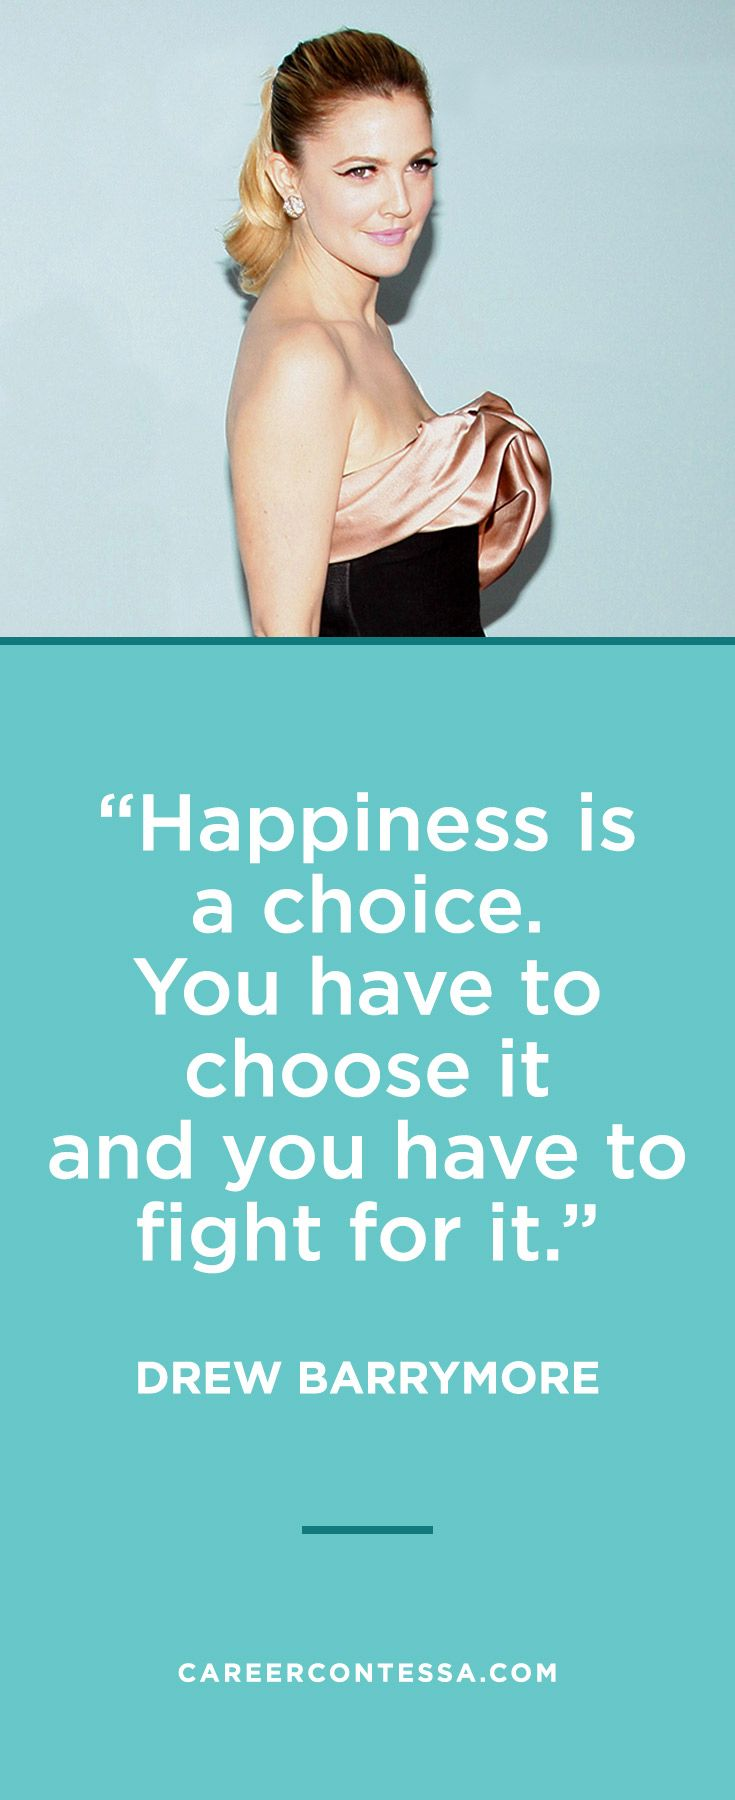 She Always Had Really Nice Makeup: We Love This Quote From Drew Barrymore About Happiness